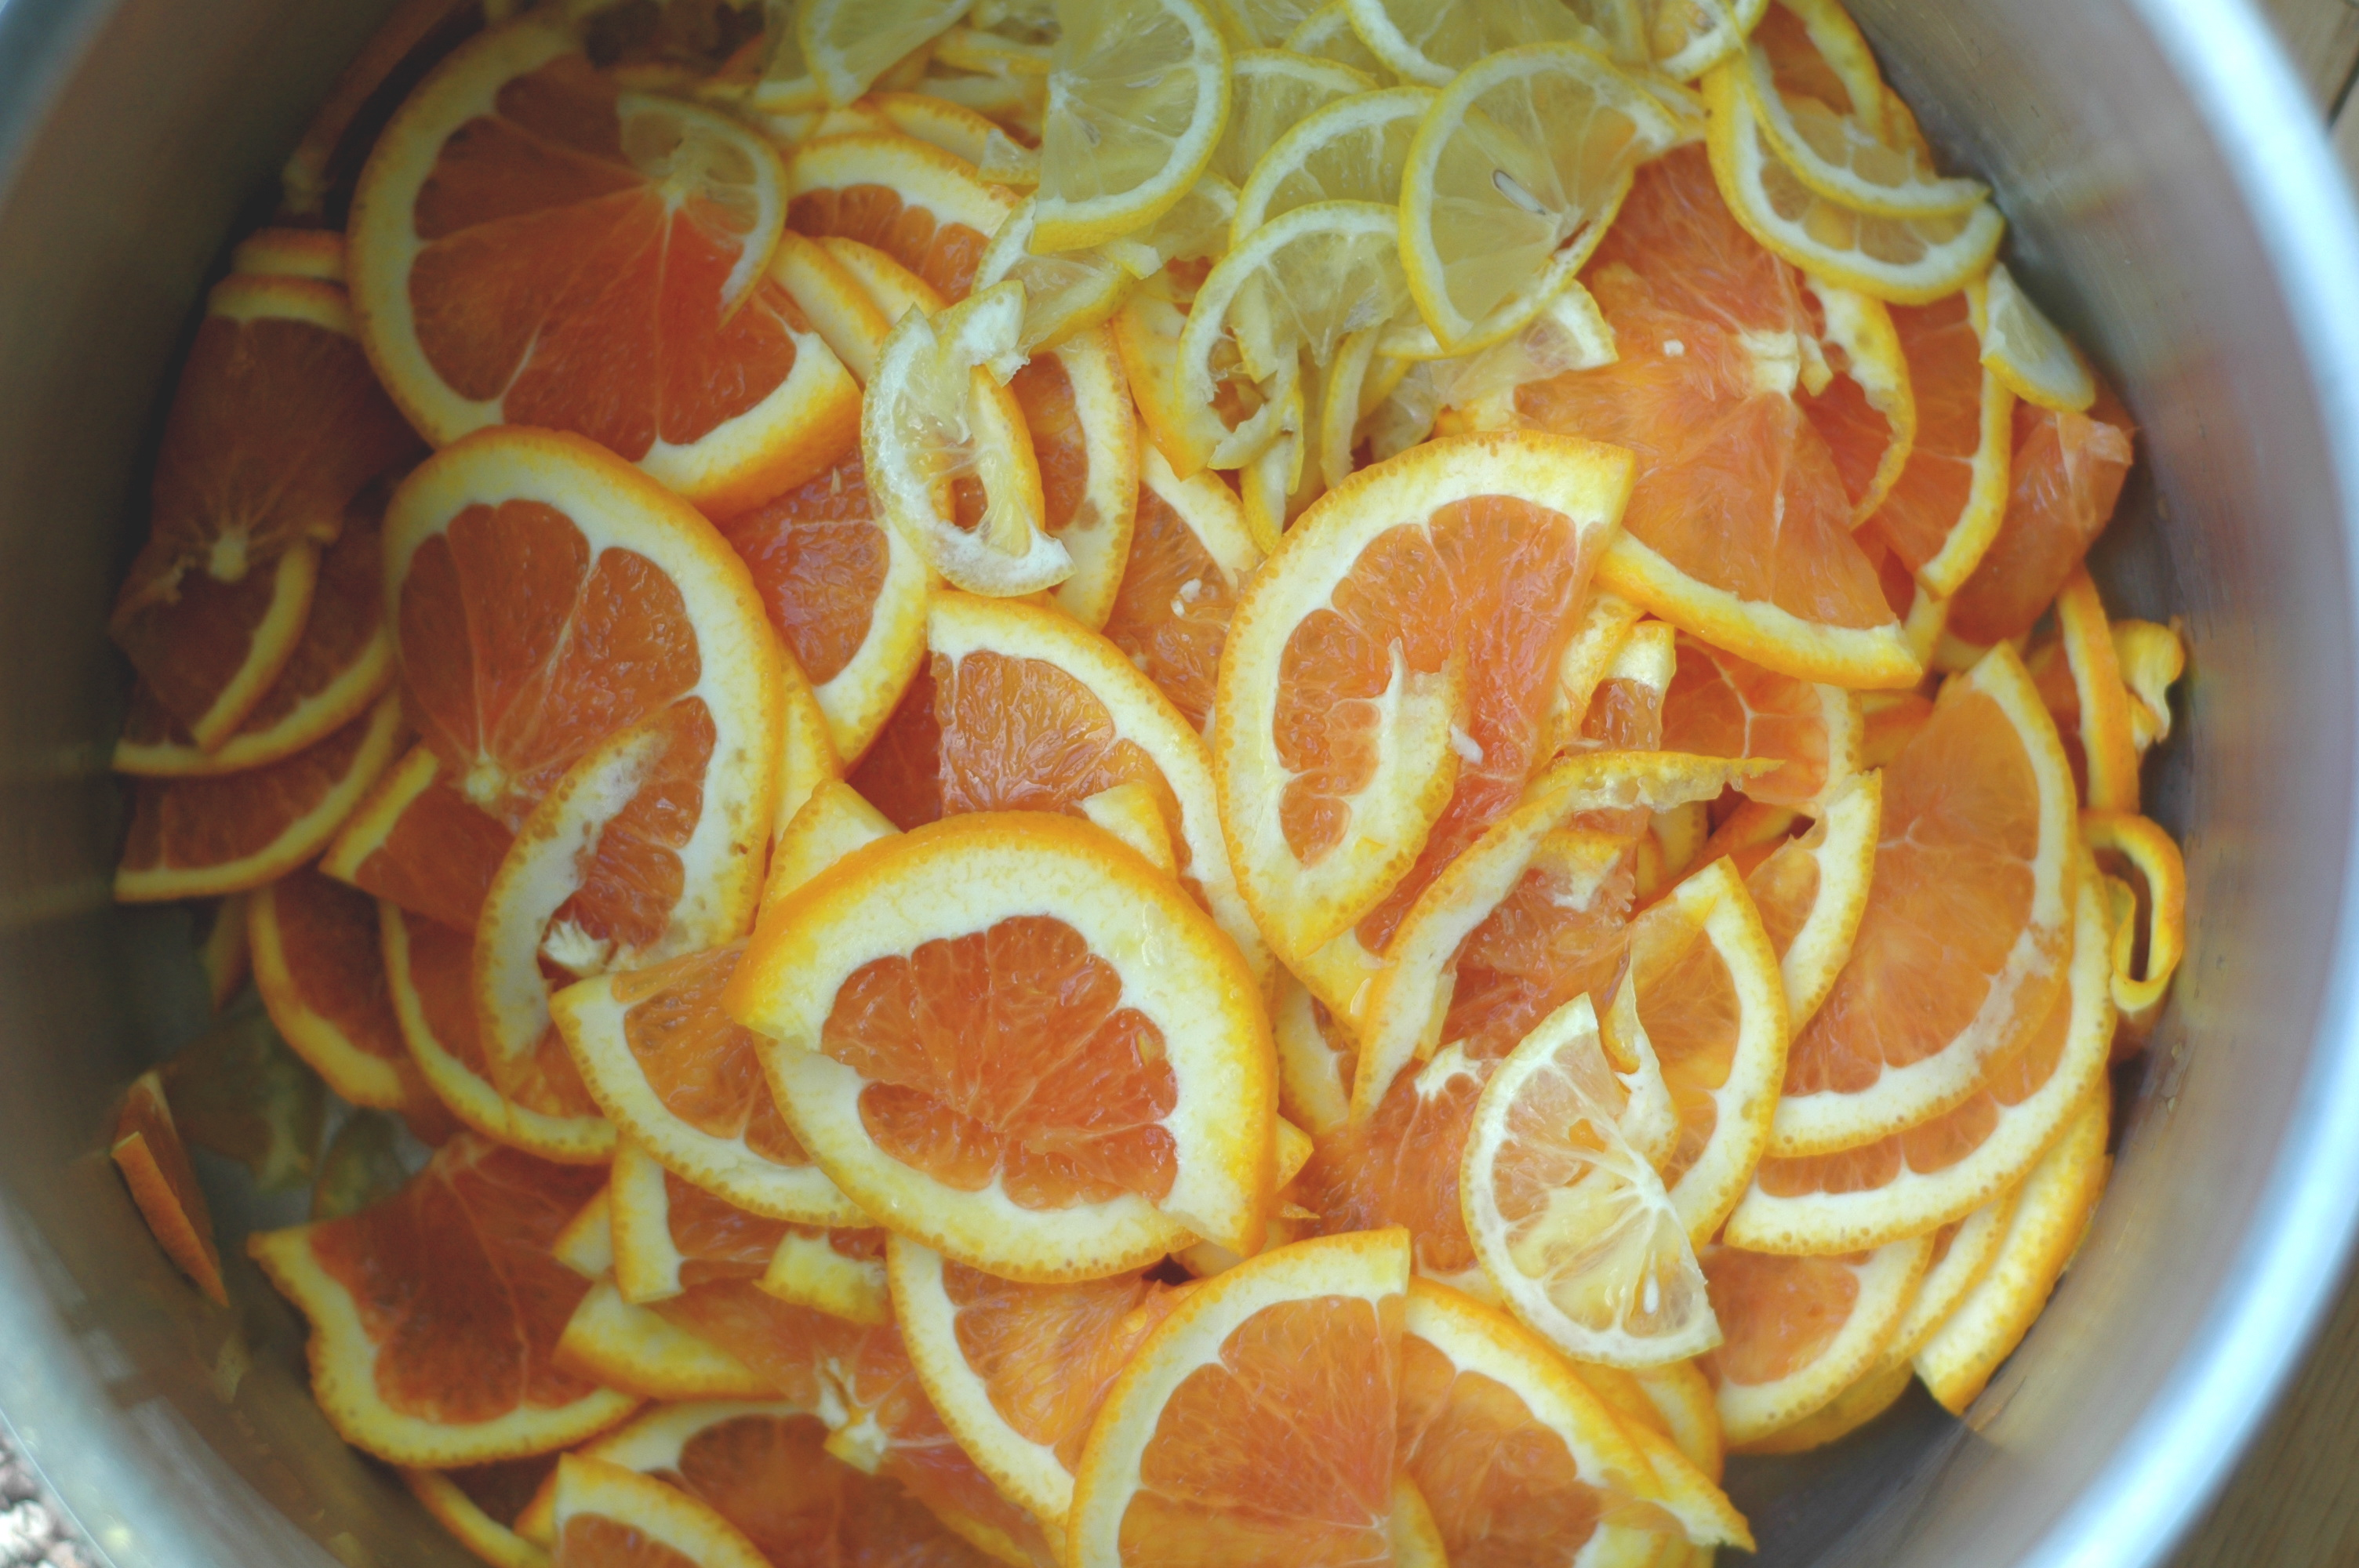 ... oranges 820 cara cara chile marmalade marmalade made with three cara